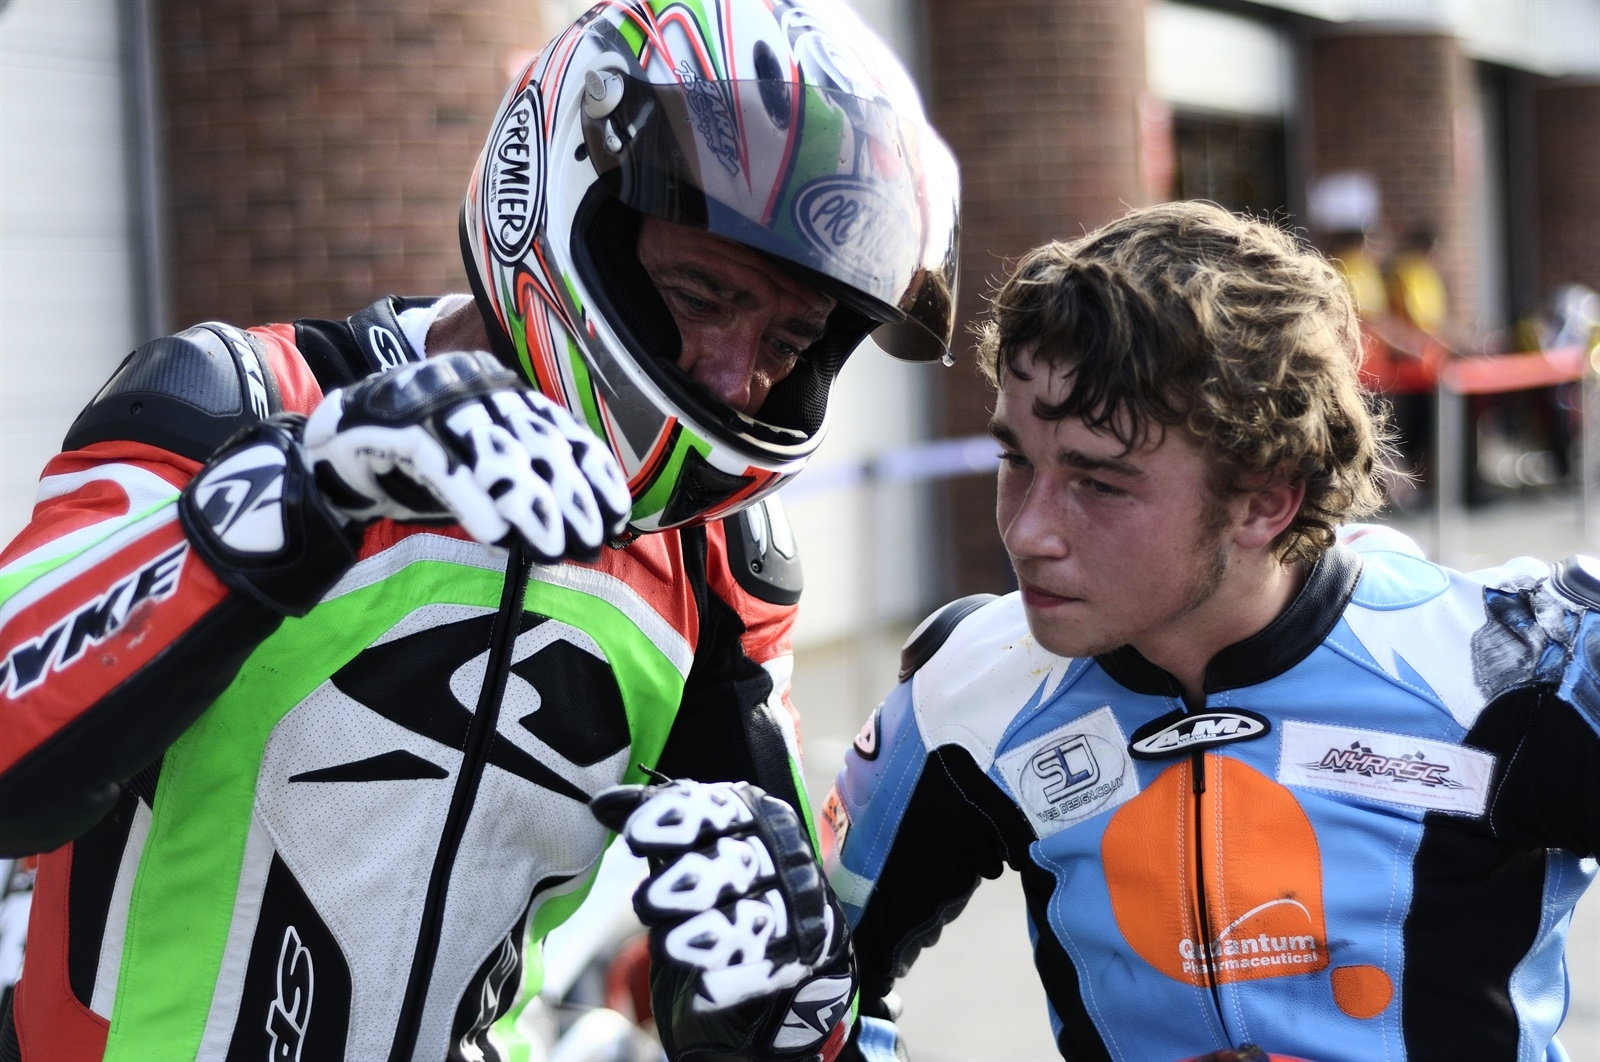 MSVR News - Rouse wins inaugural Triumph Young Guns ride